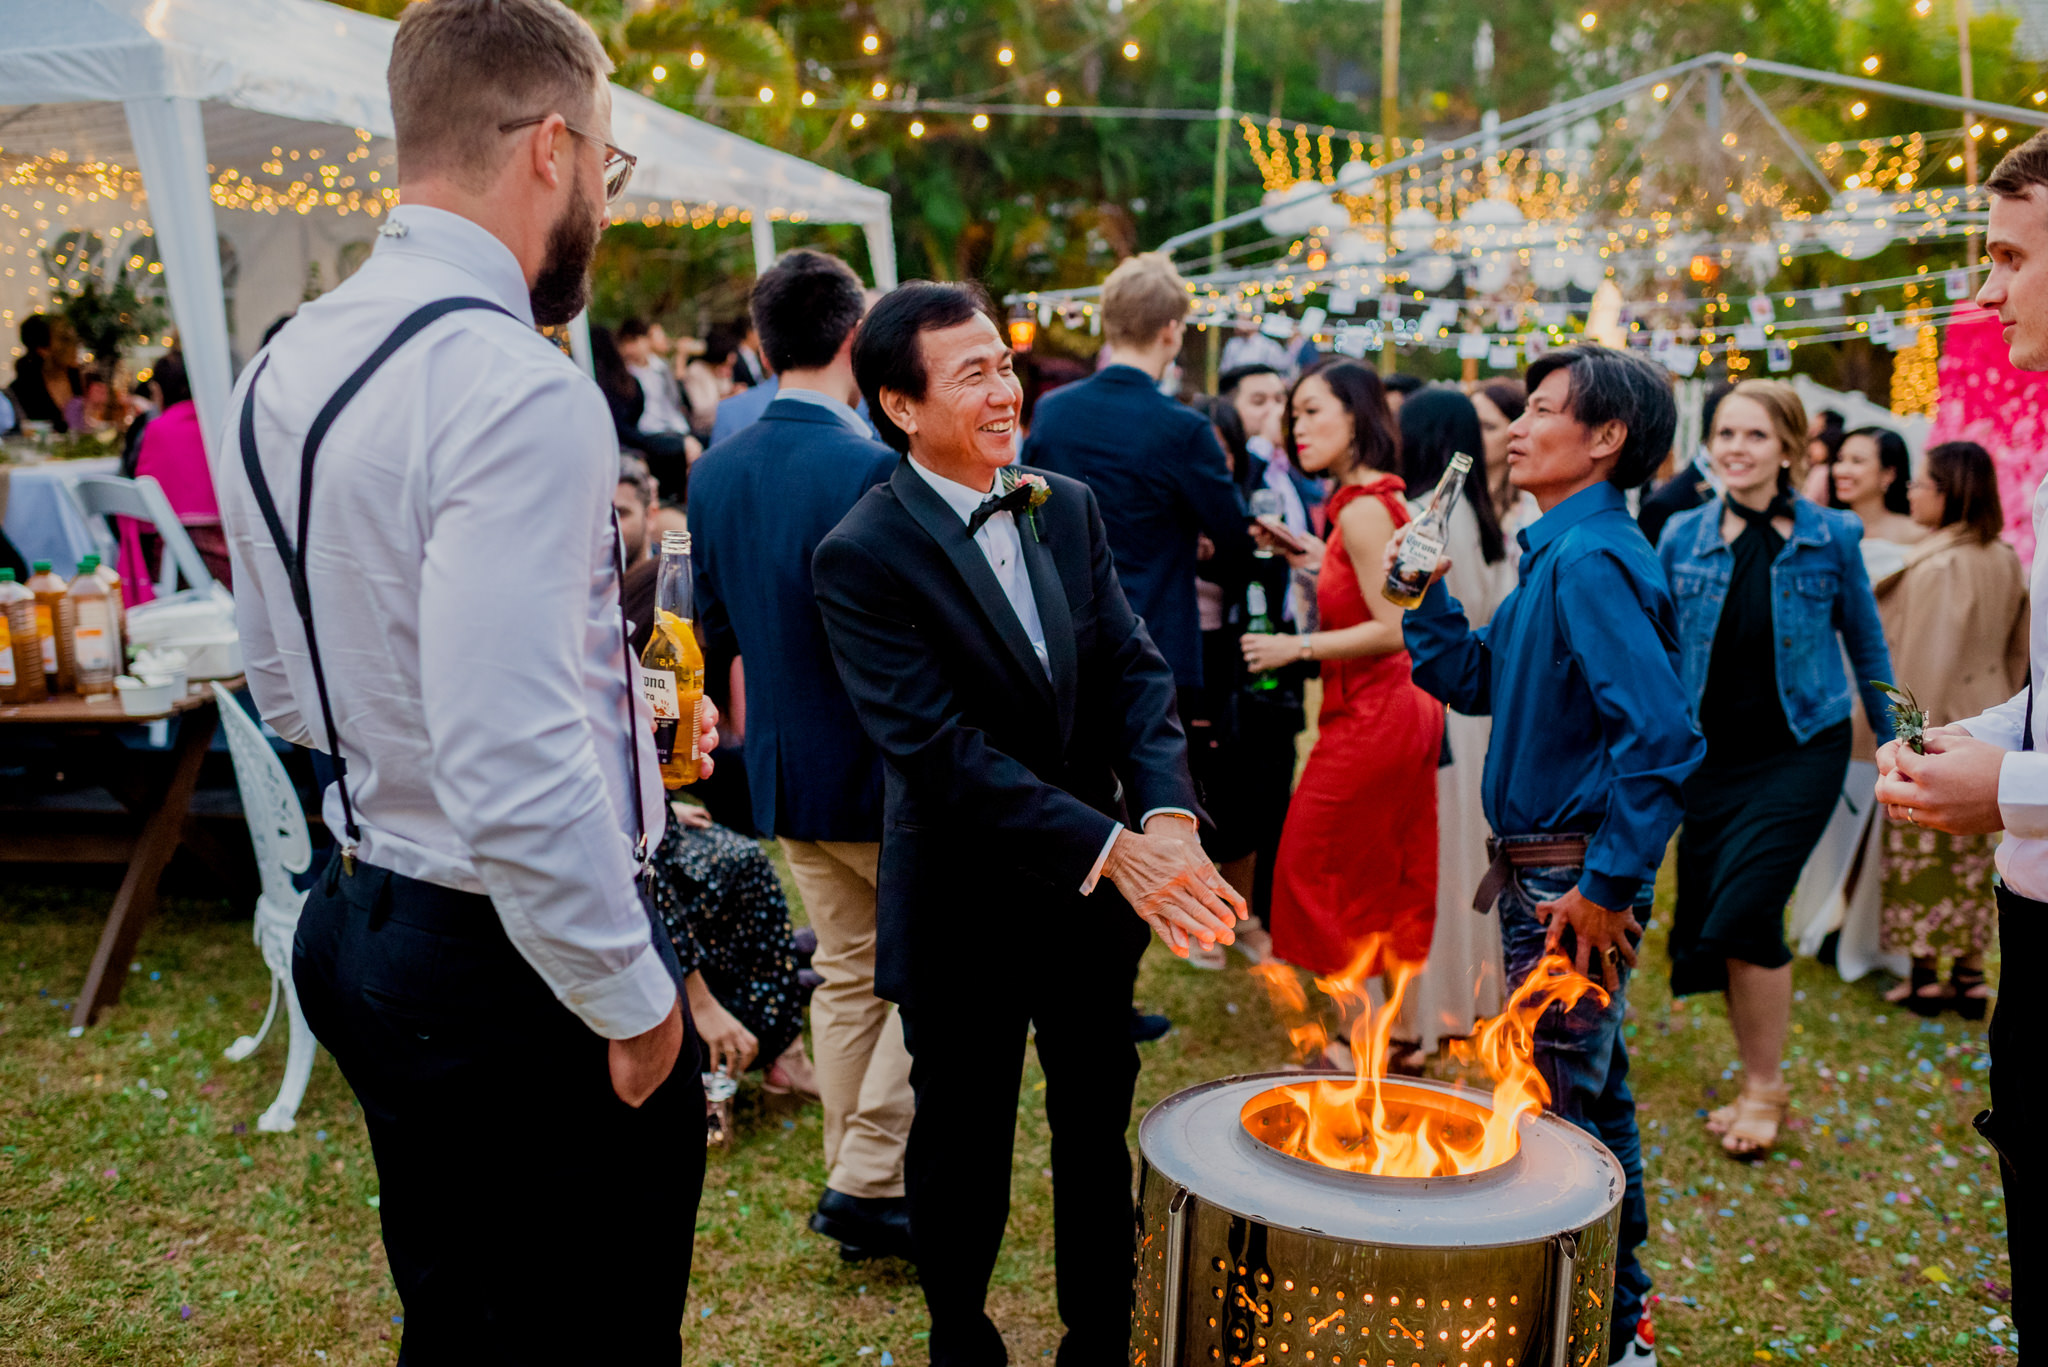 Father-of-the-bride warms his hands in front of a fire pit